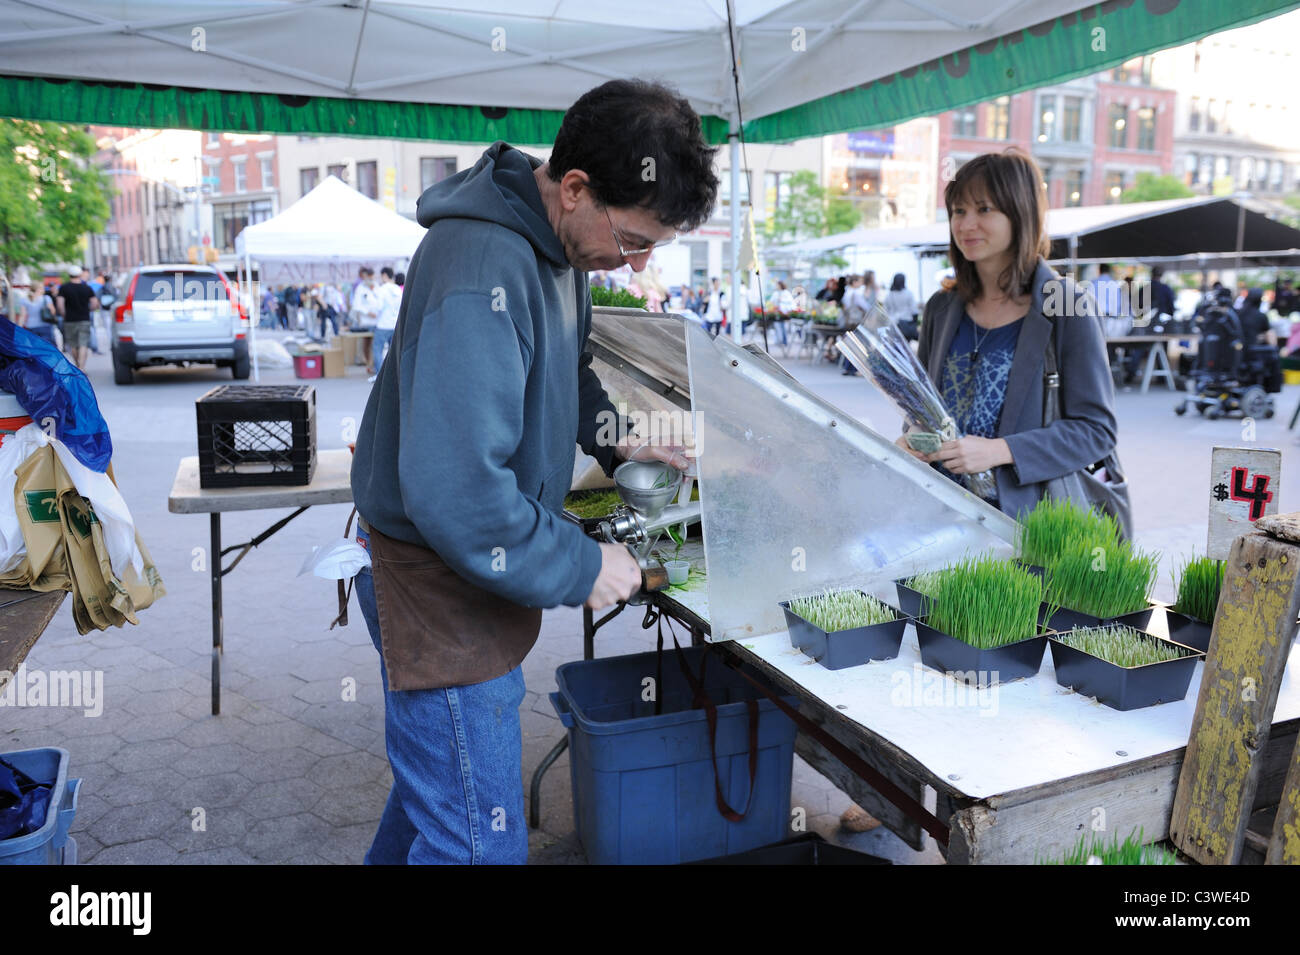 A farmer juicing wheatgrass for a customer in the Union Square farmers' market. - Stock Image